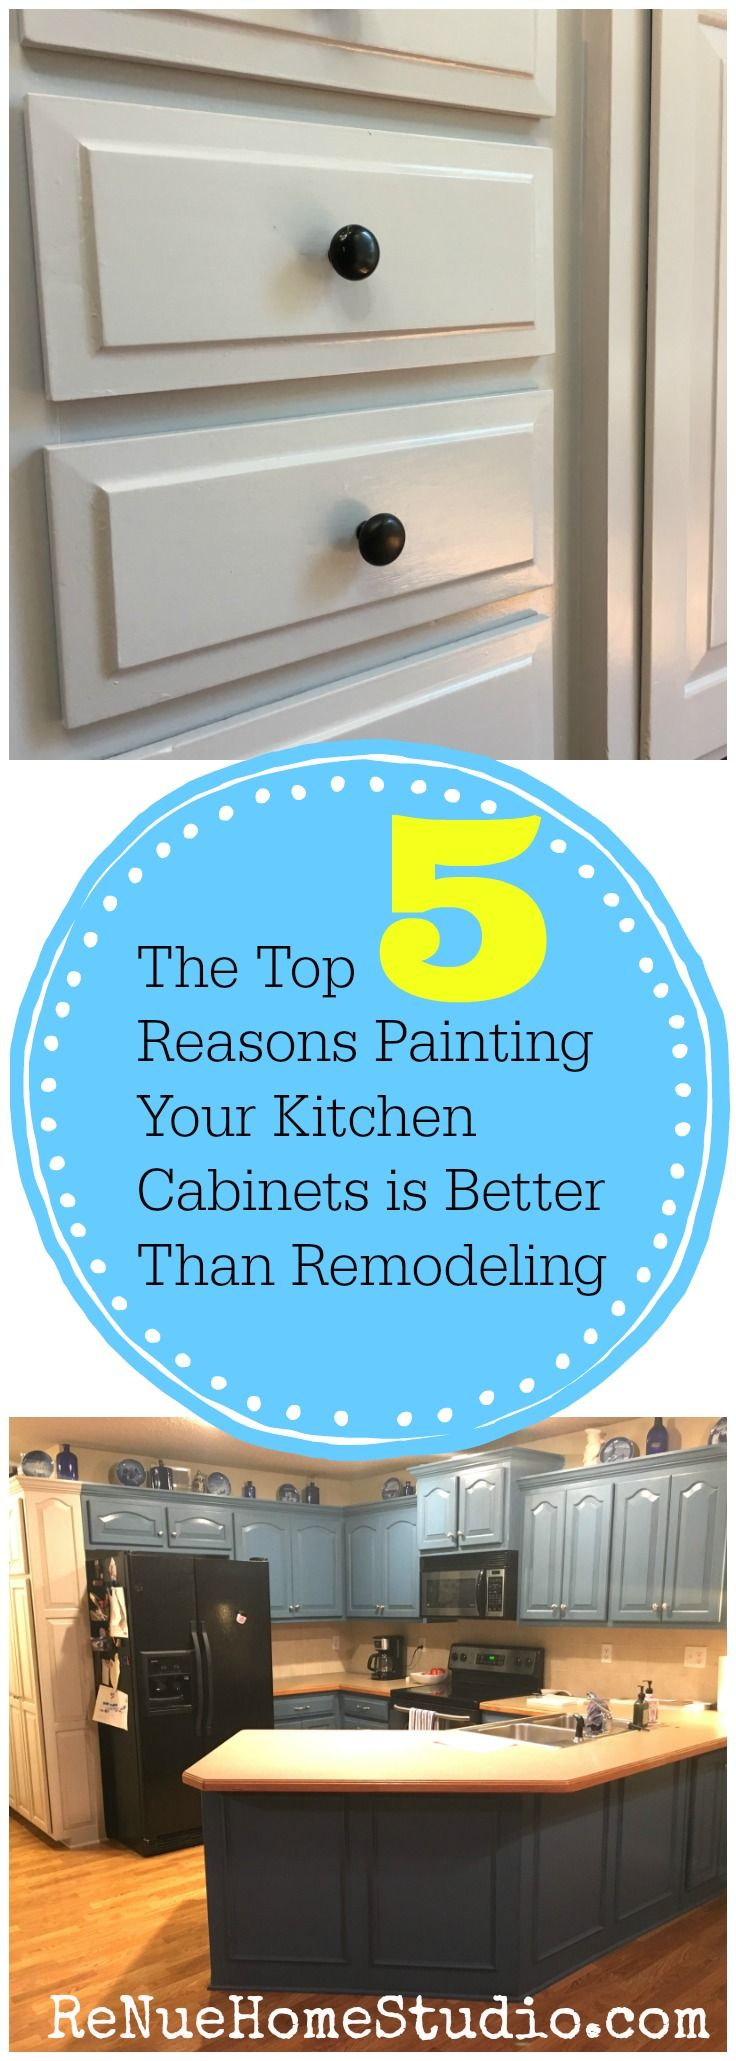 We\'ll give you the Top 5 Reasons why Painting Your Kitchen Cabinets ...